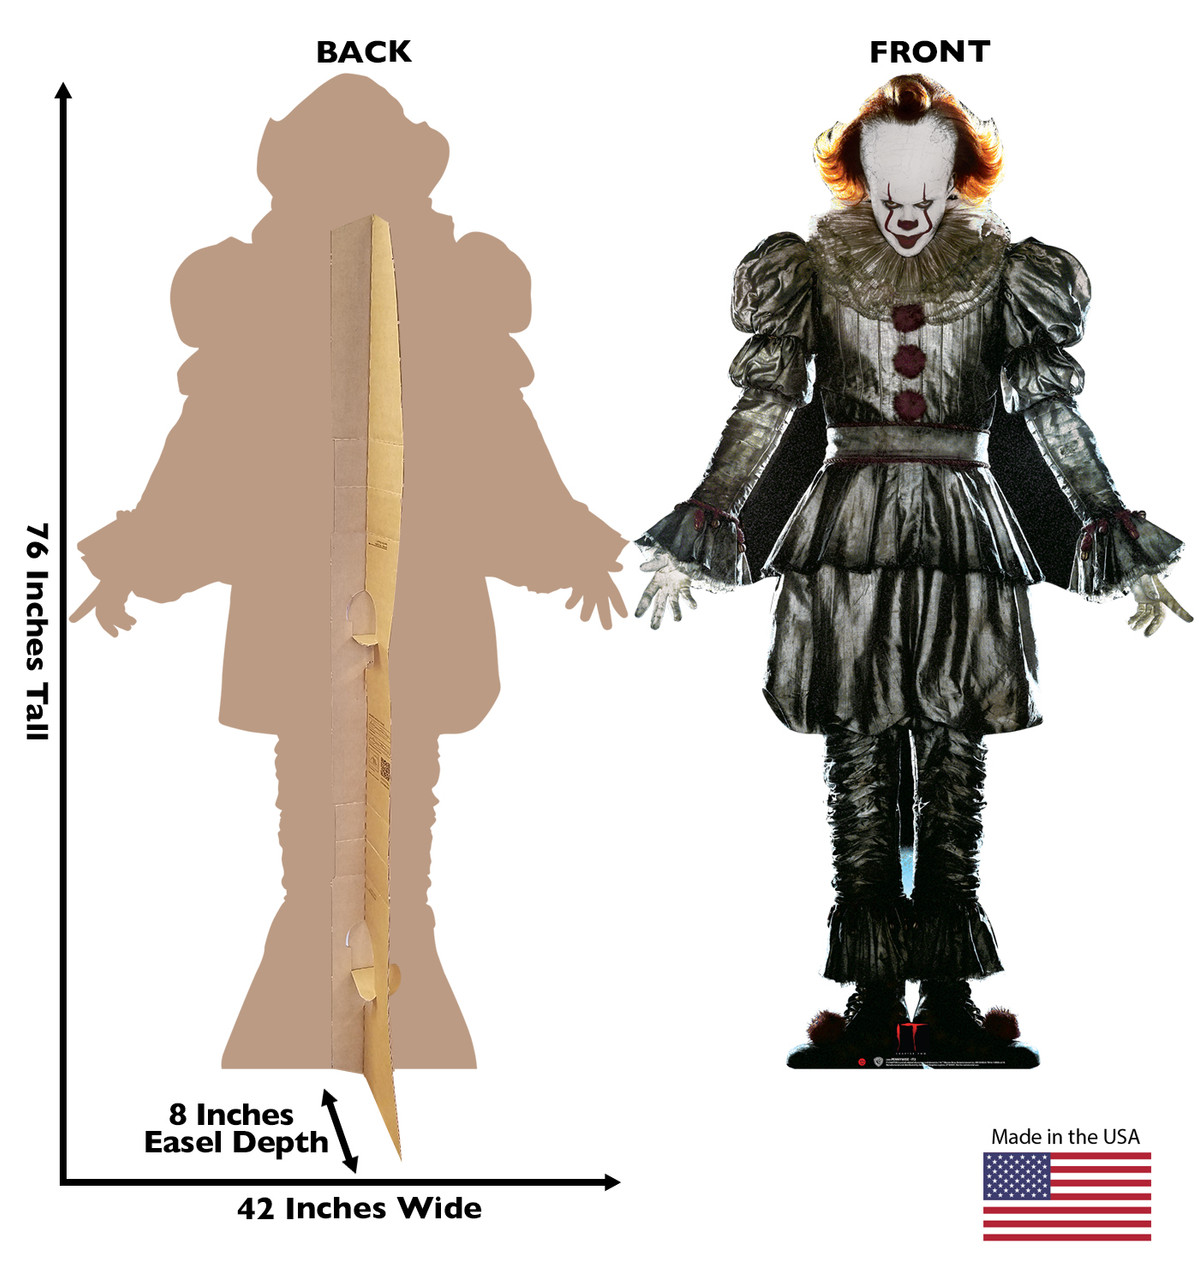 Pennywise from IT Chapter 2 Movie 2019 Cardboard Front and Back View